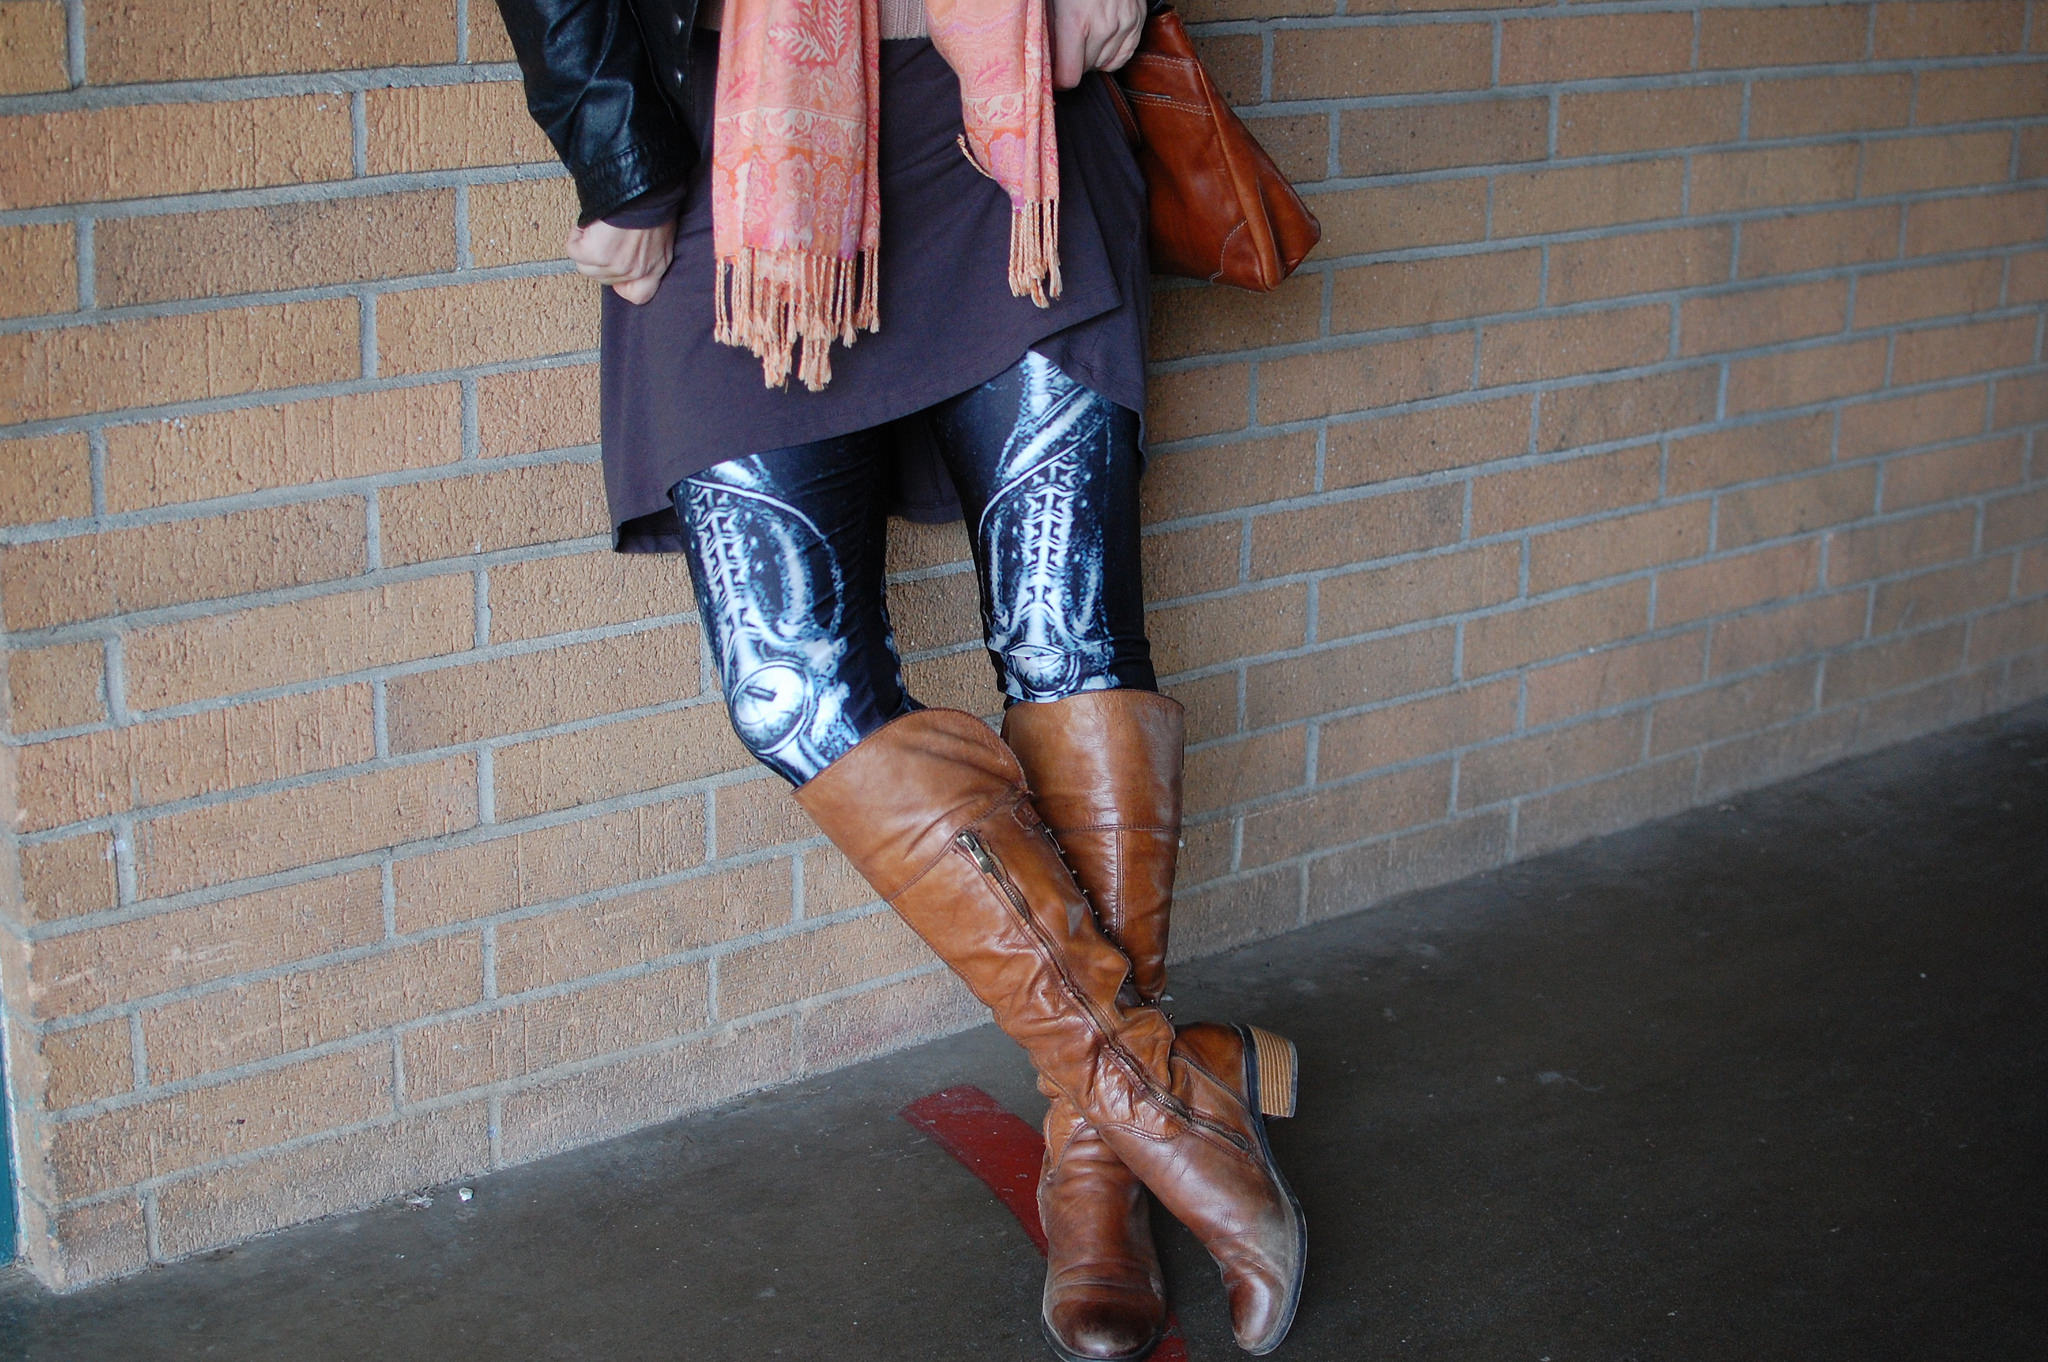 skeleton leggings daily outfit blog whatiwore2day ootd